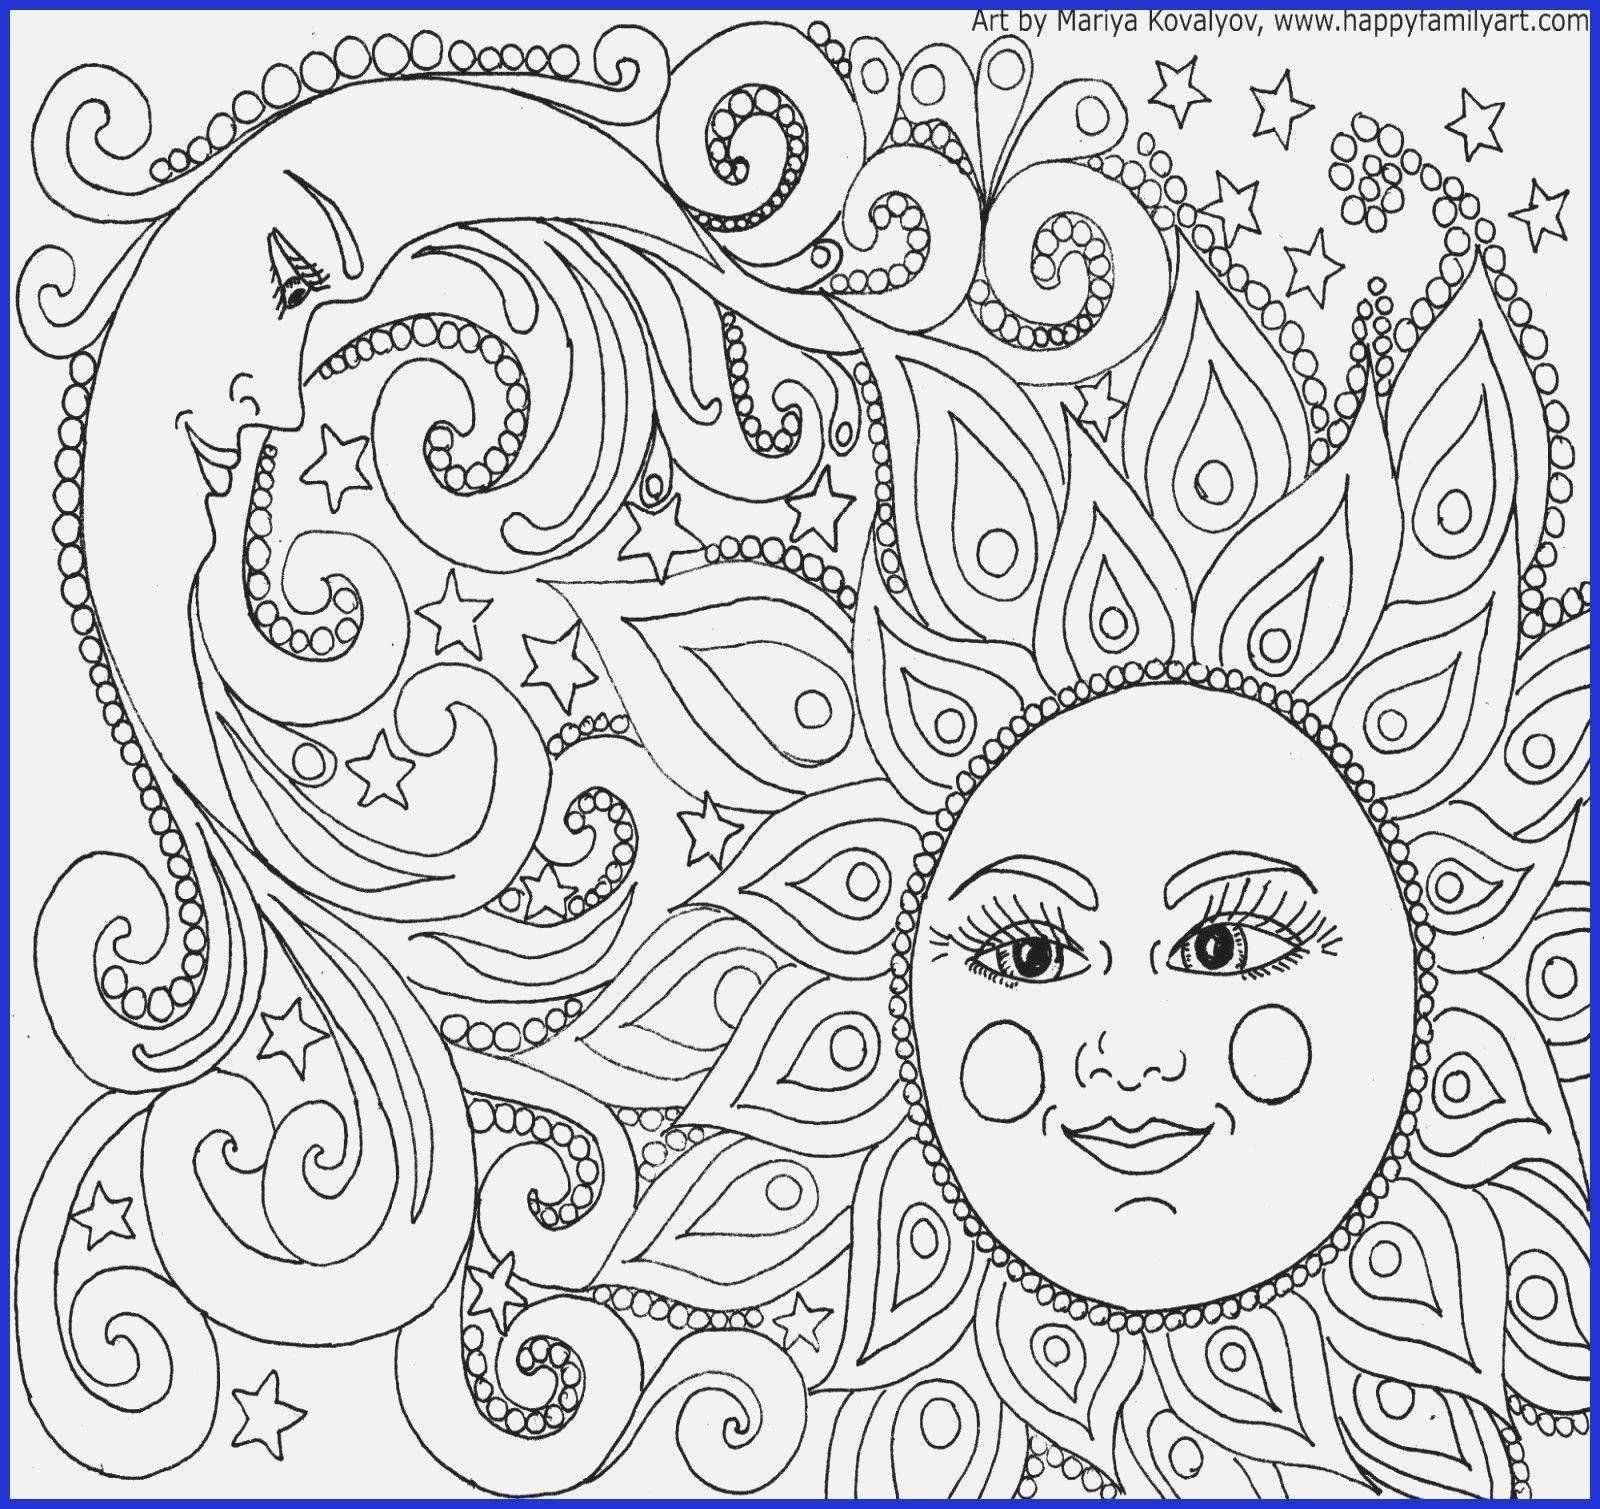 26 Awesome Halloween Adult Coloring Pages in 2020 (With images) | Fox coloring  page, Pattern coloring pages, Animal coloring pages | 1509x1600